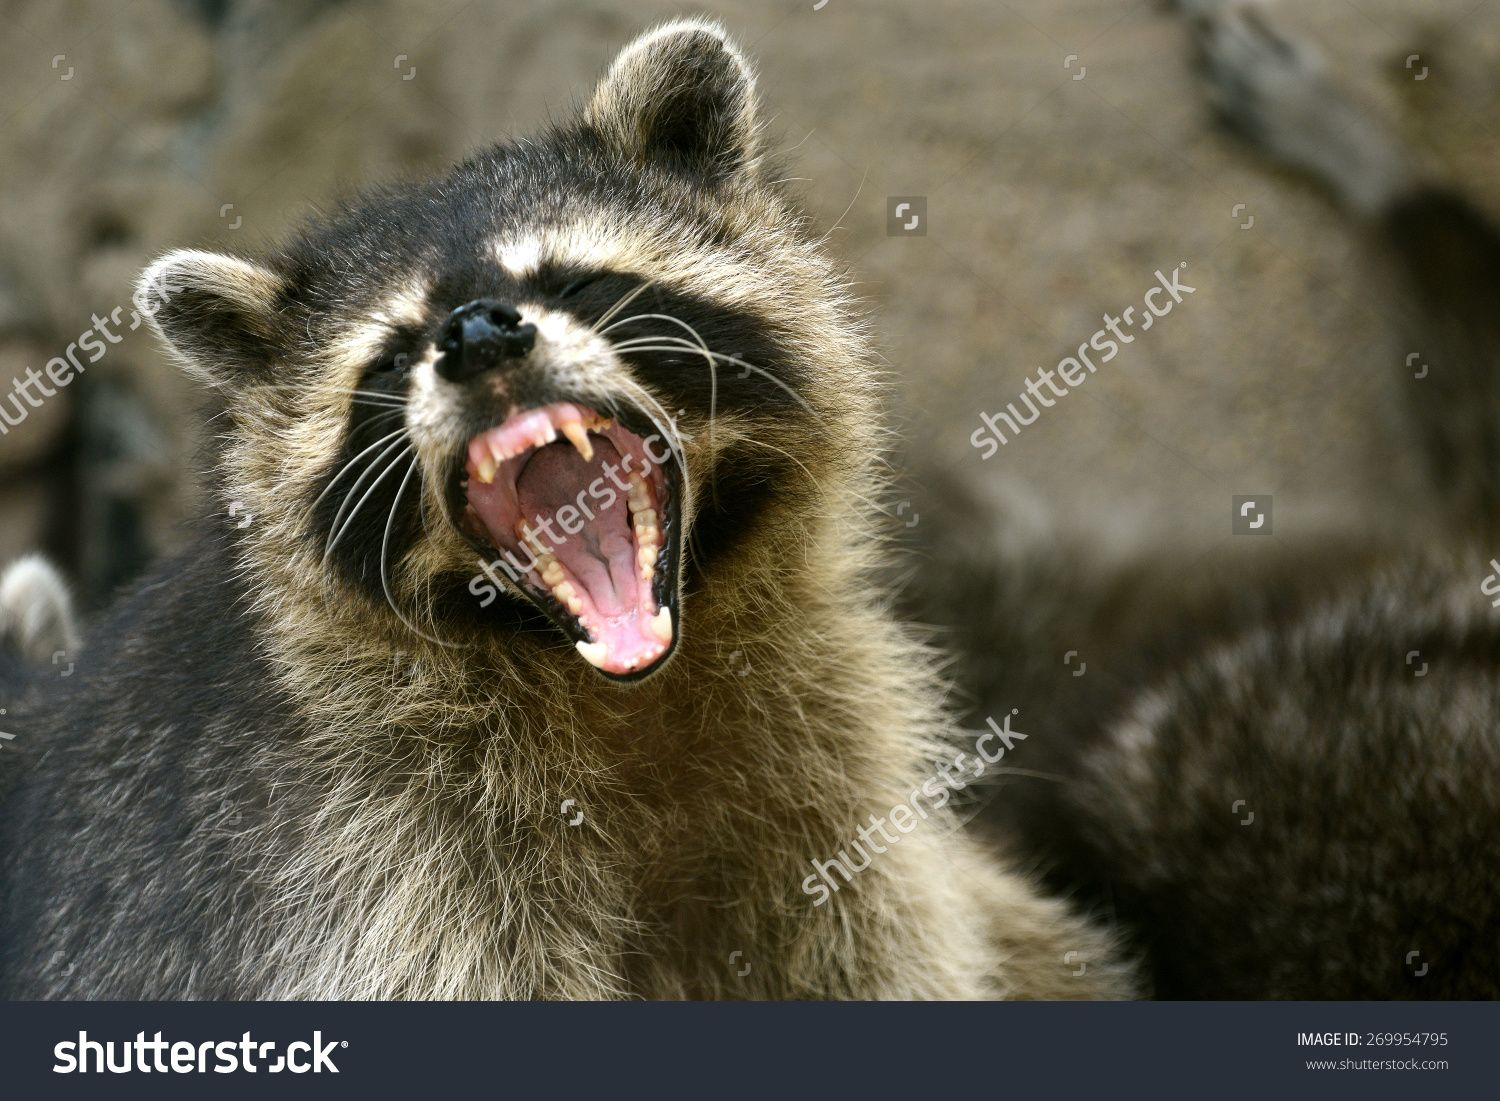 stock-photo-face-of-cute-raccoon-open-mouth-action-269954795.jpg ...